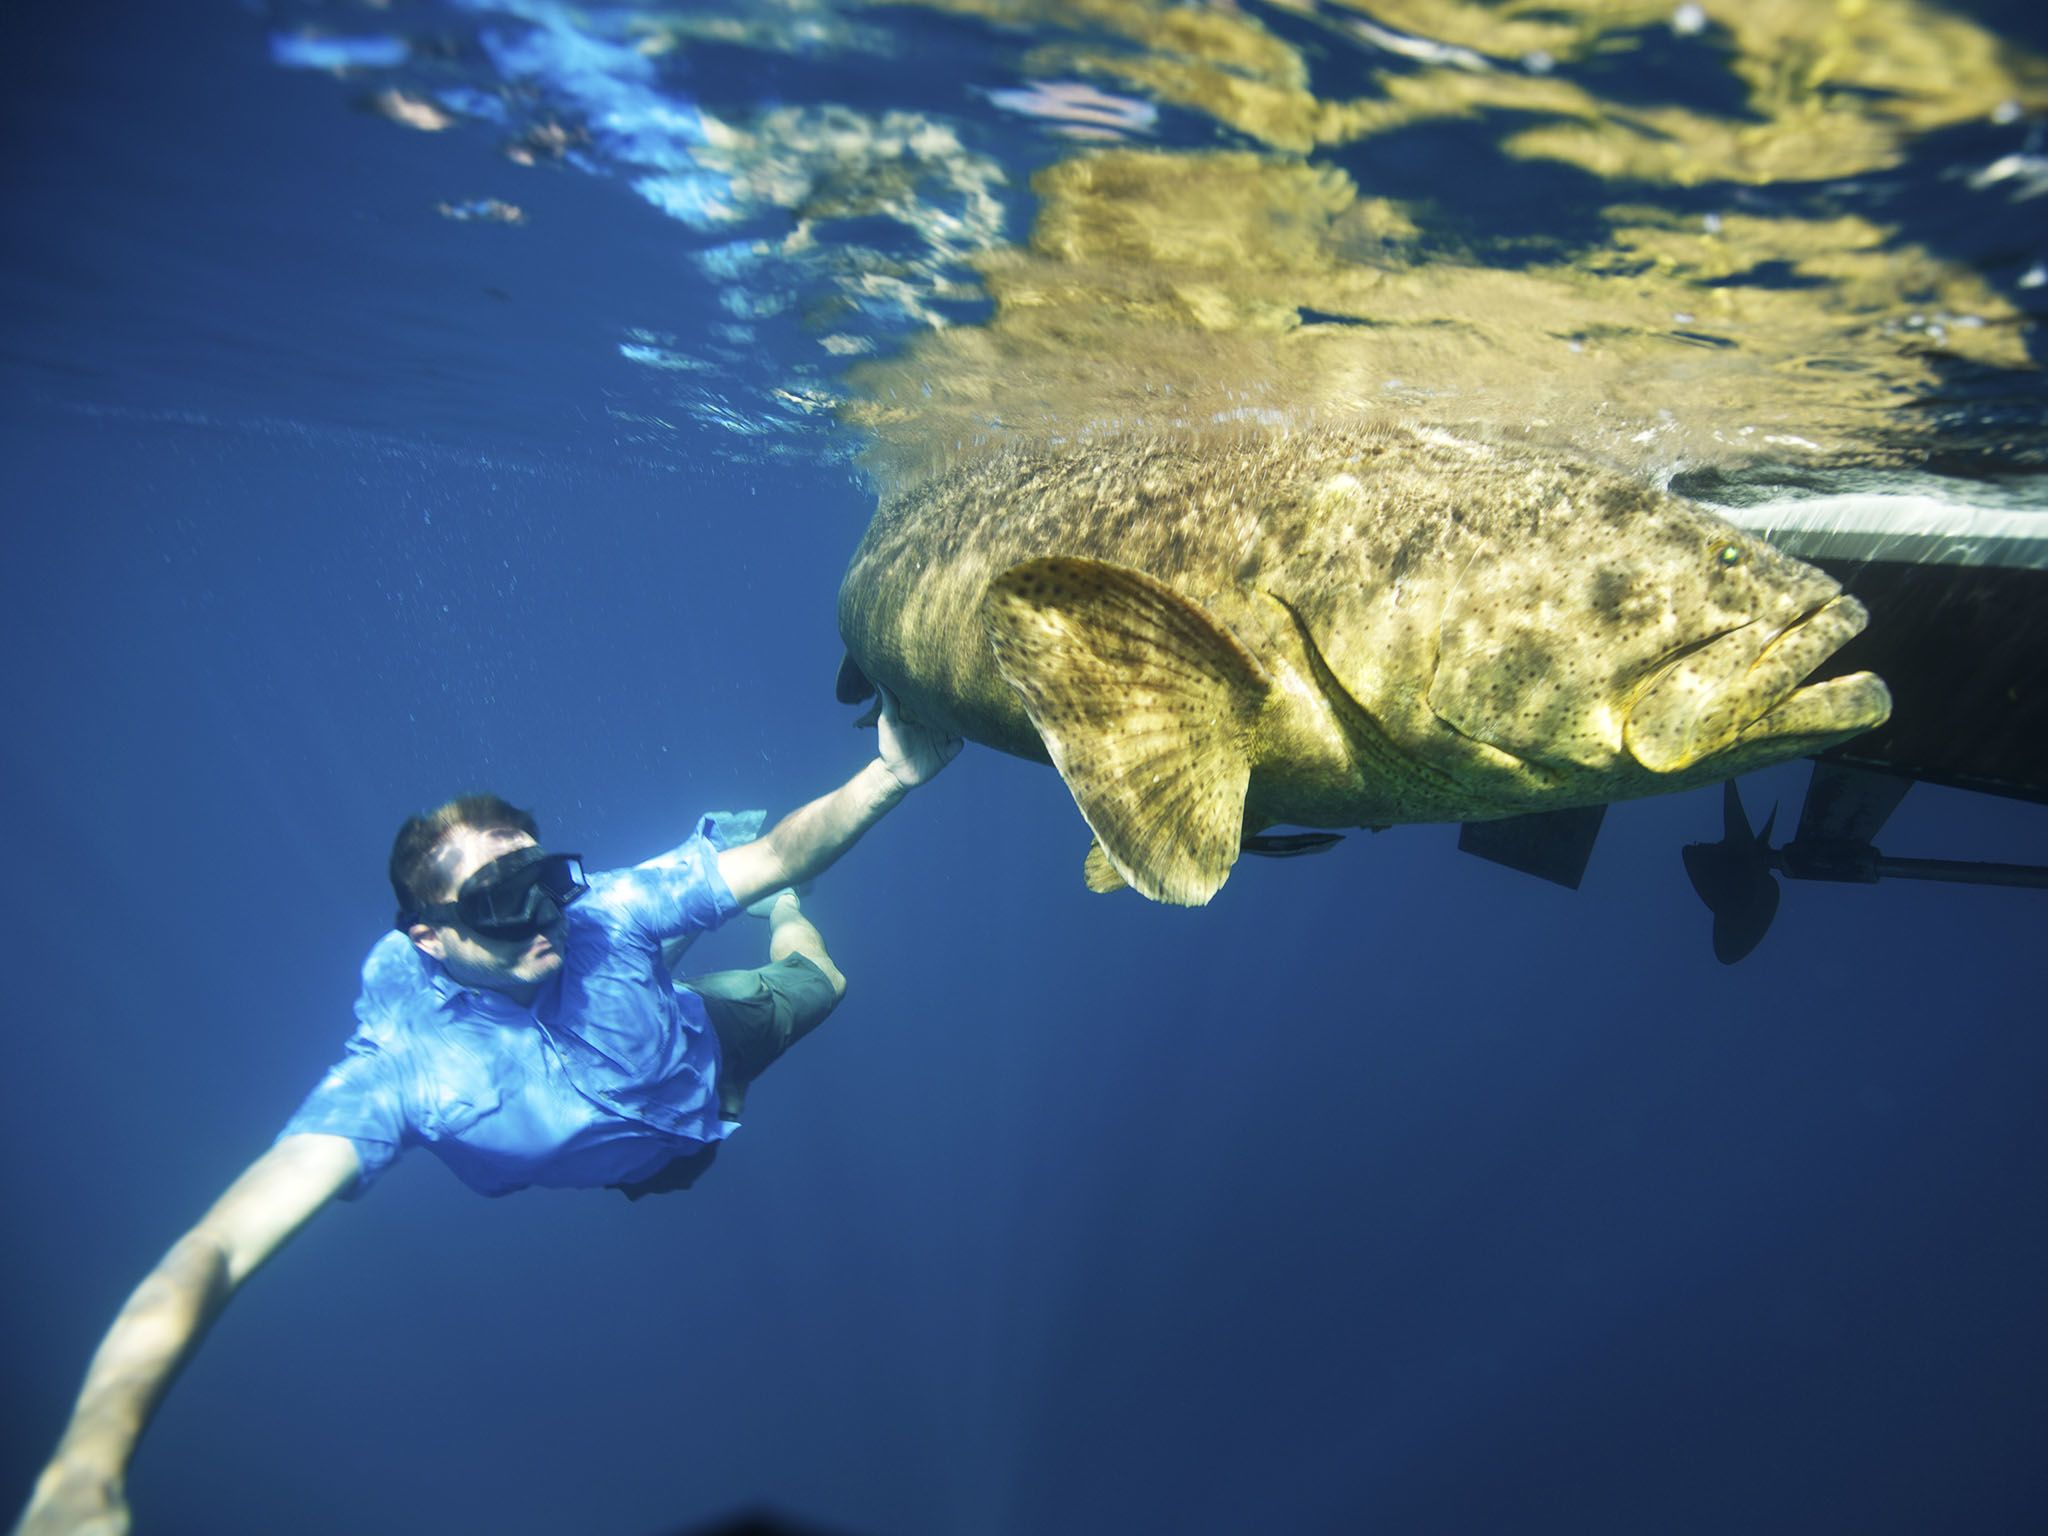 Fla.:  Zeb swims with a Goliath Grouper. The Goliath Grouper is listed as a Critically... [Photo of the day - 四月 2016]